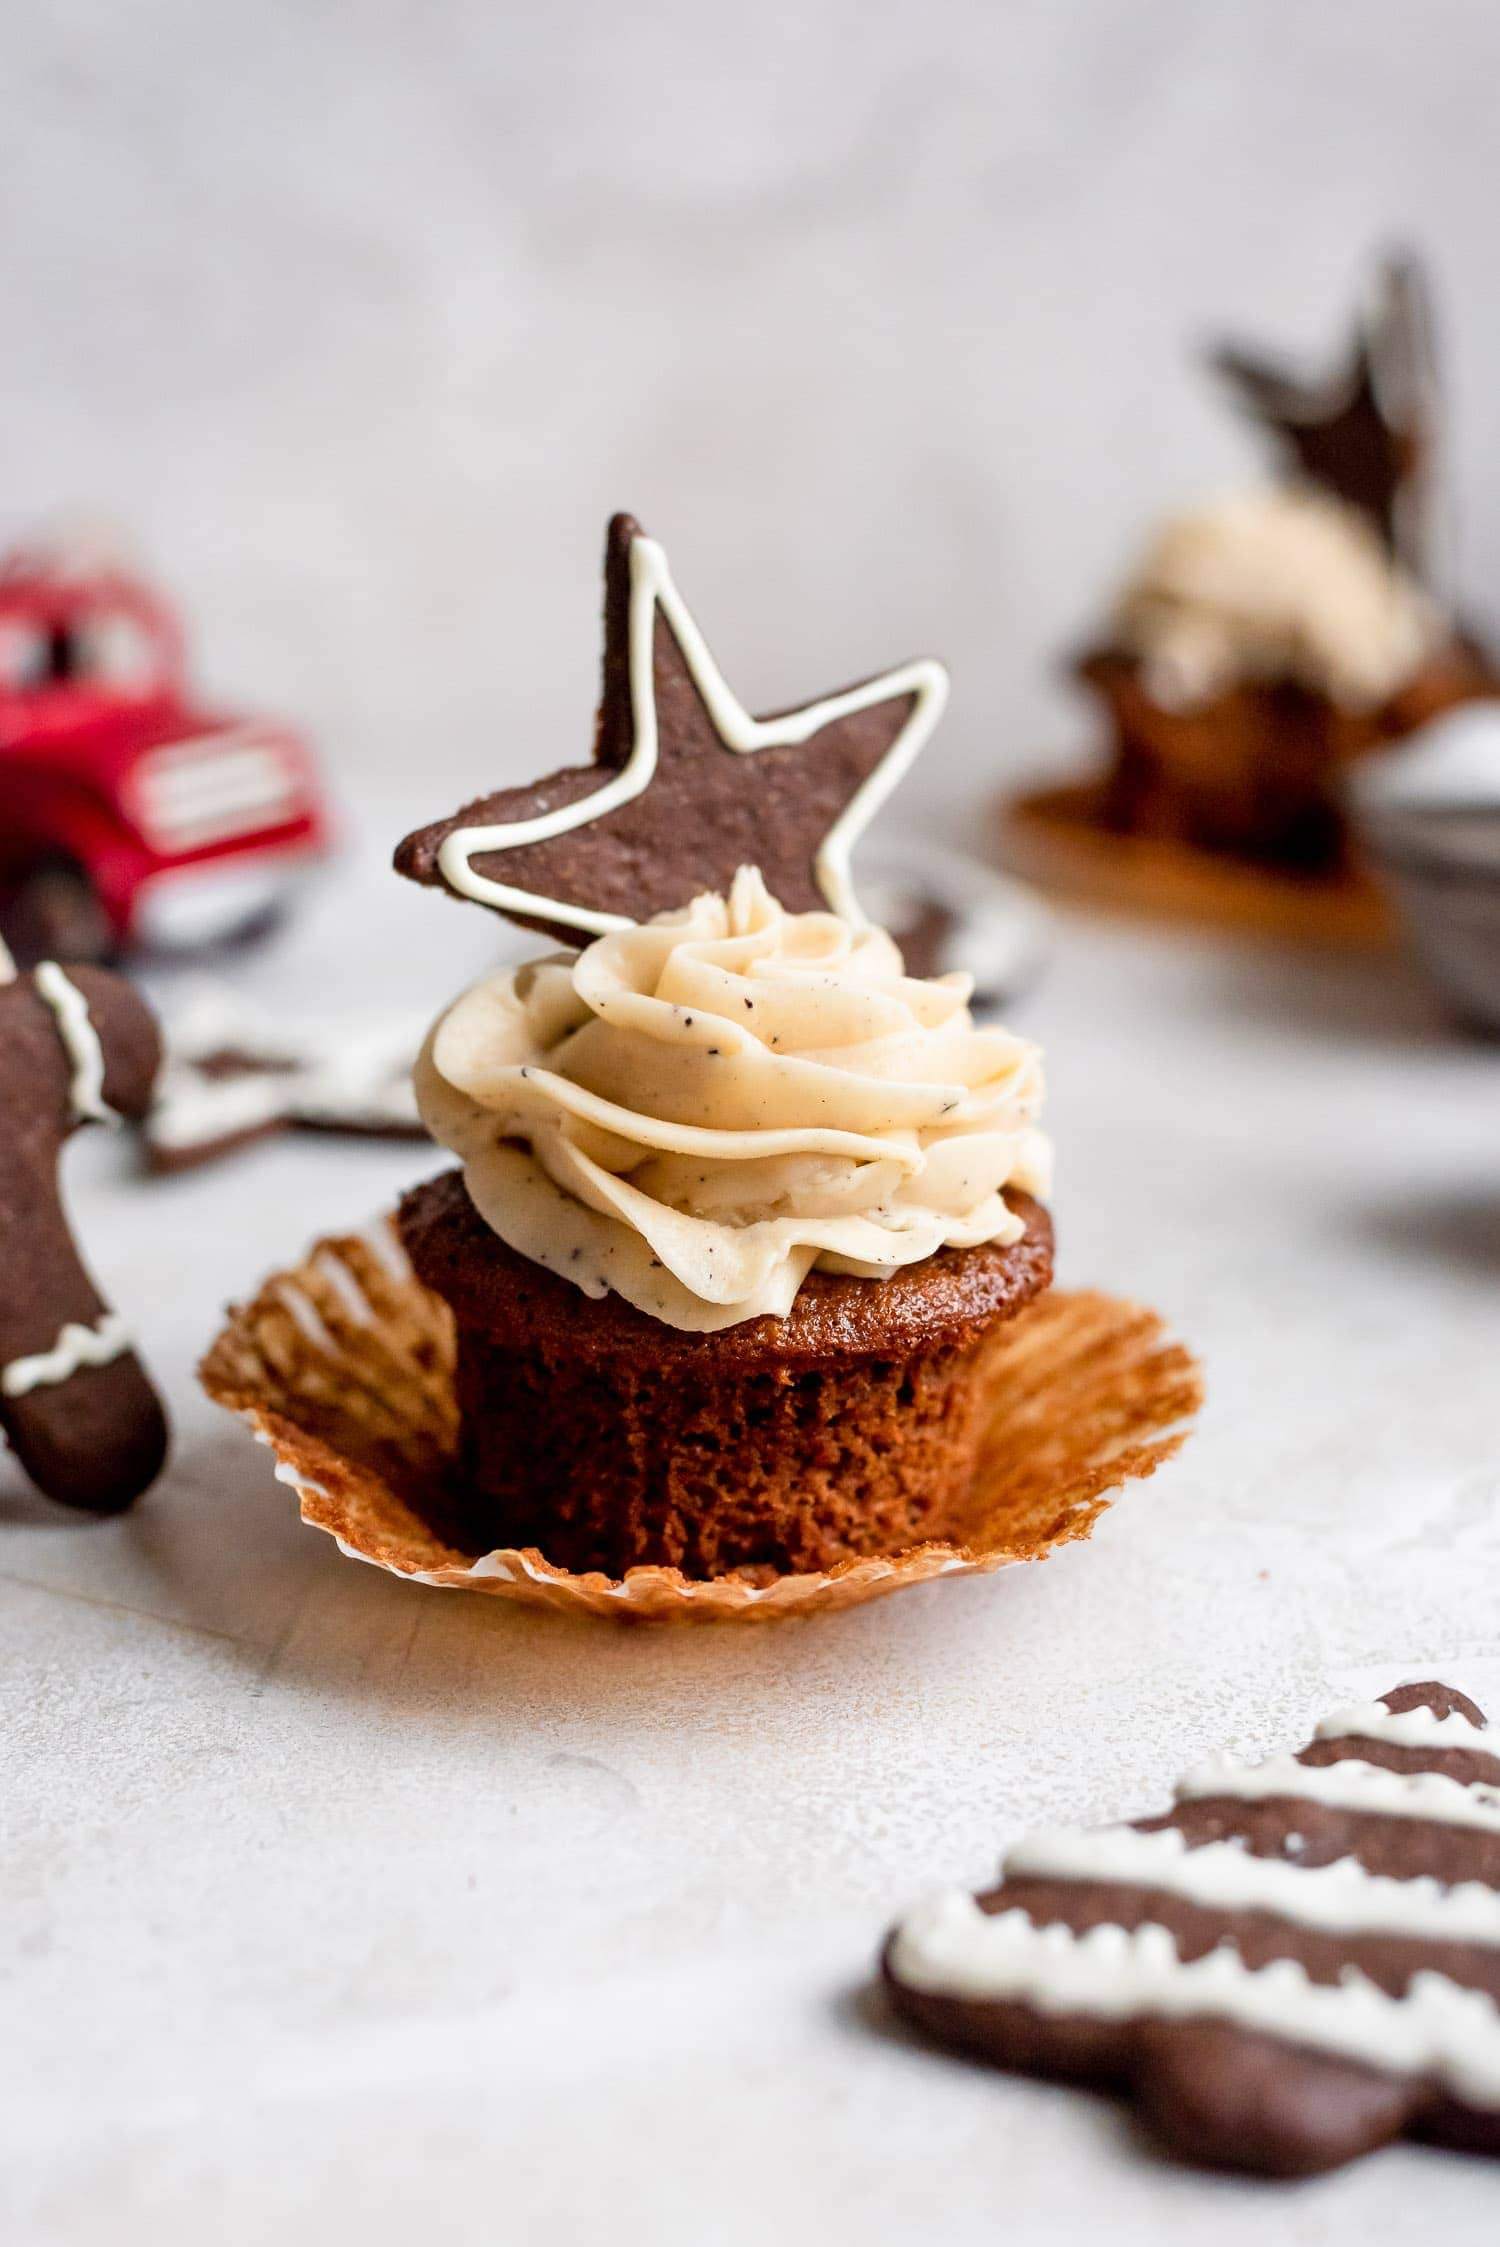 cupcake with wrapped peeled away and topped with gingerbread cookie